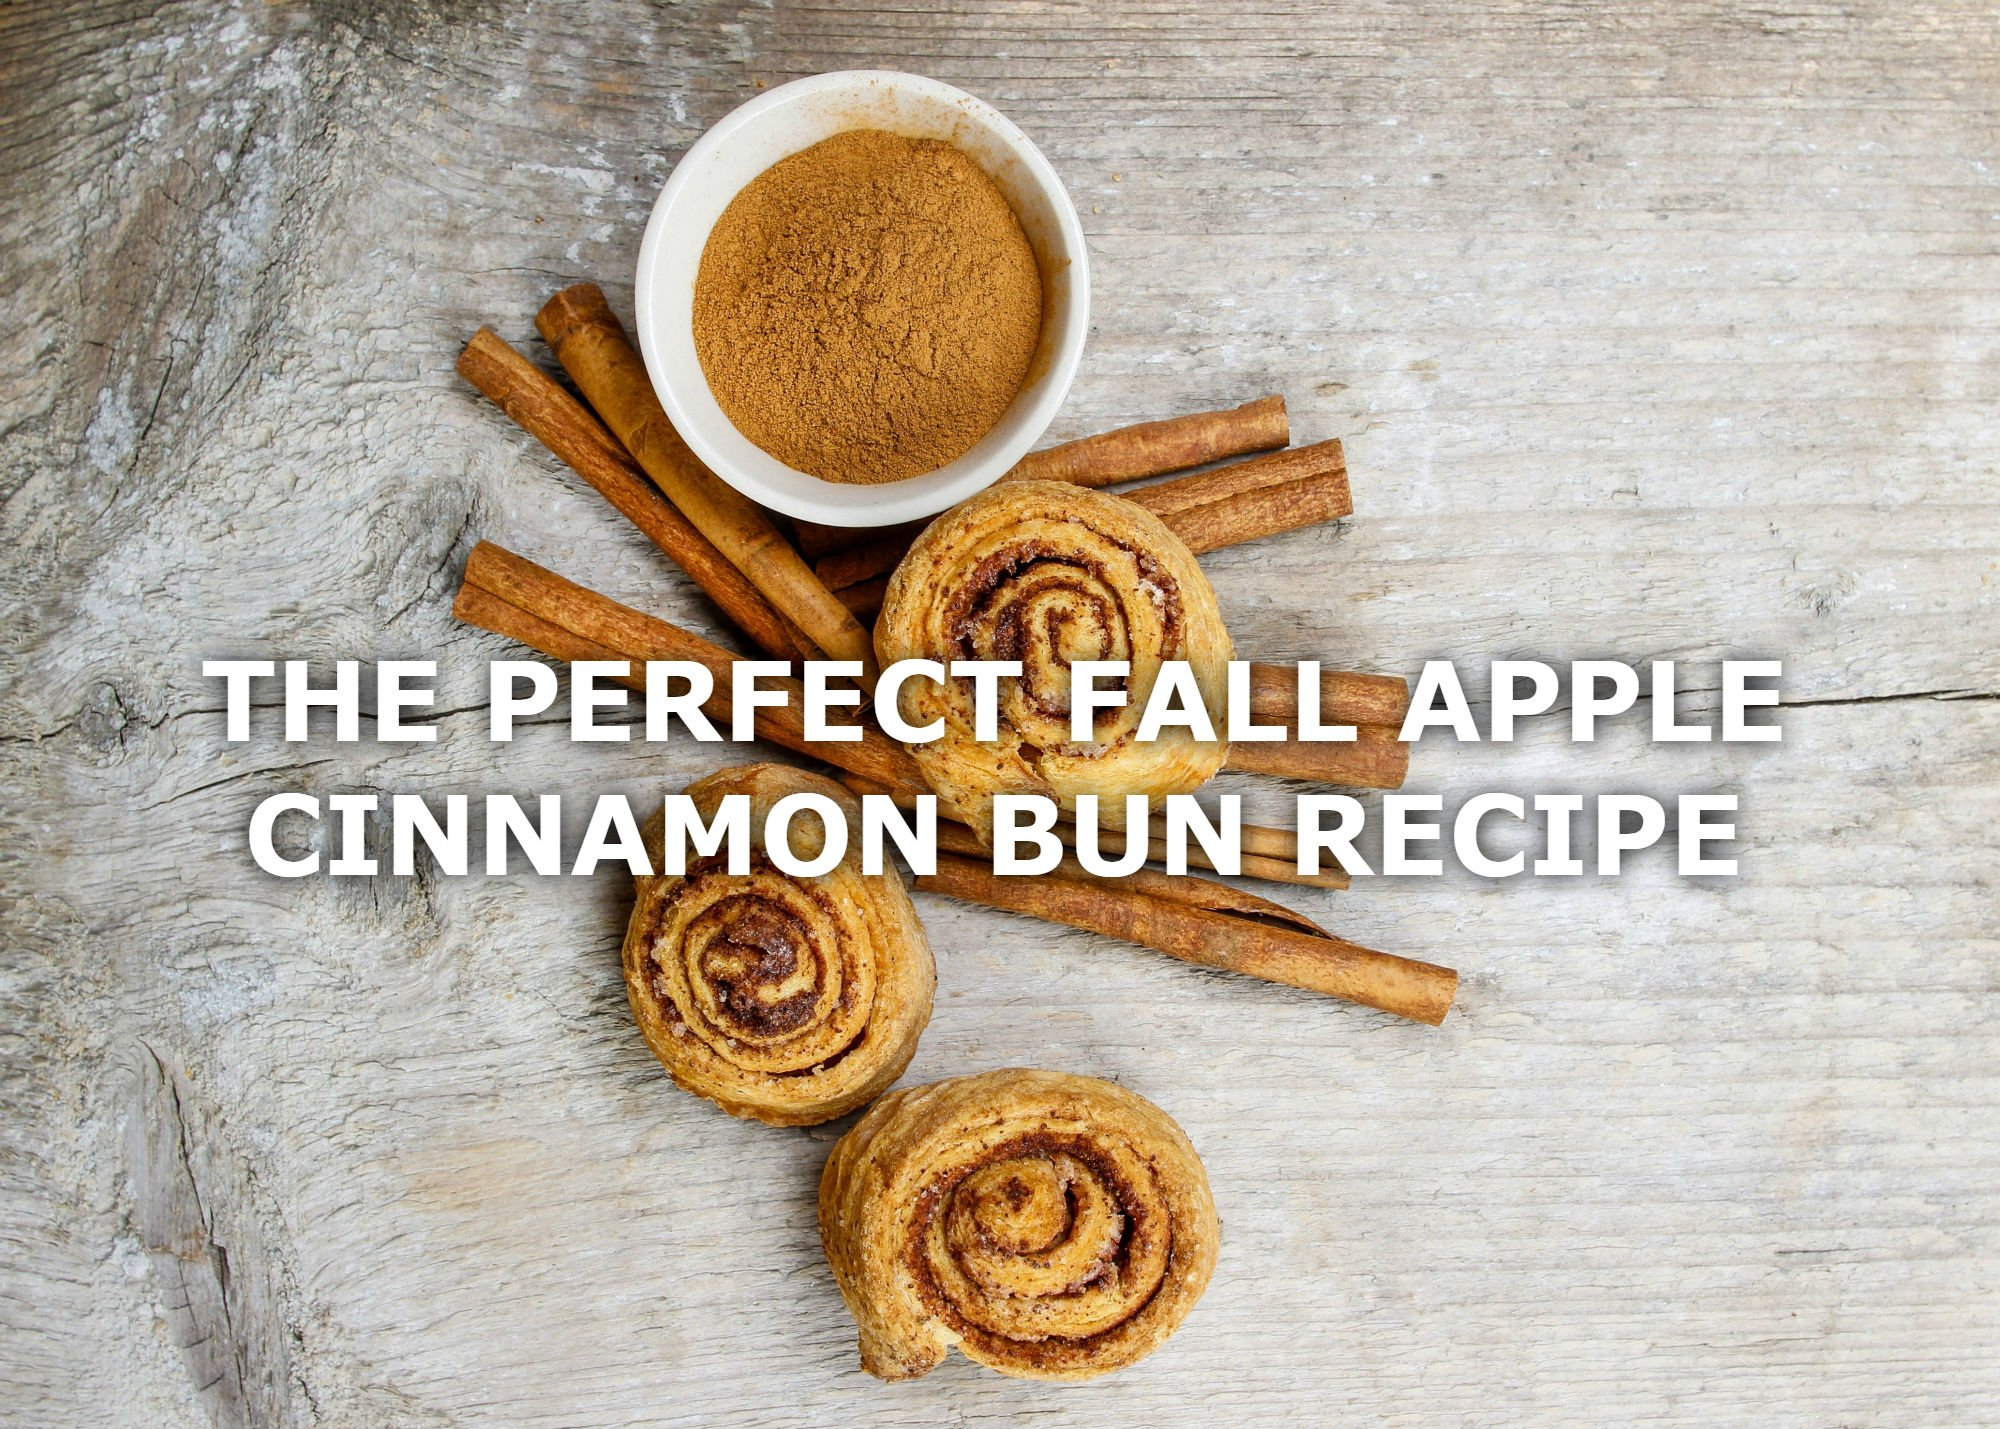 Ambrosia Apple Cinnamon Bun Recipe